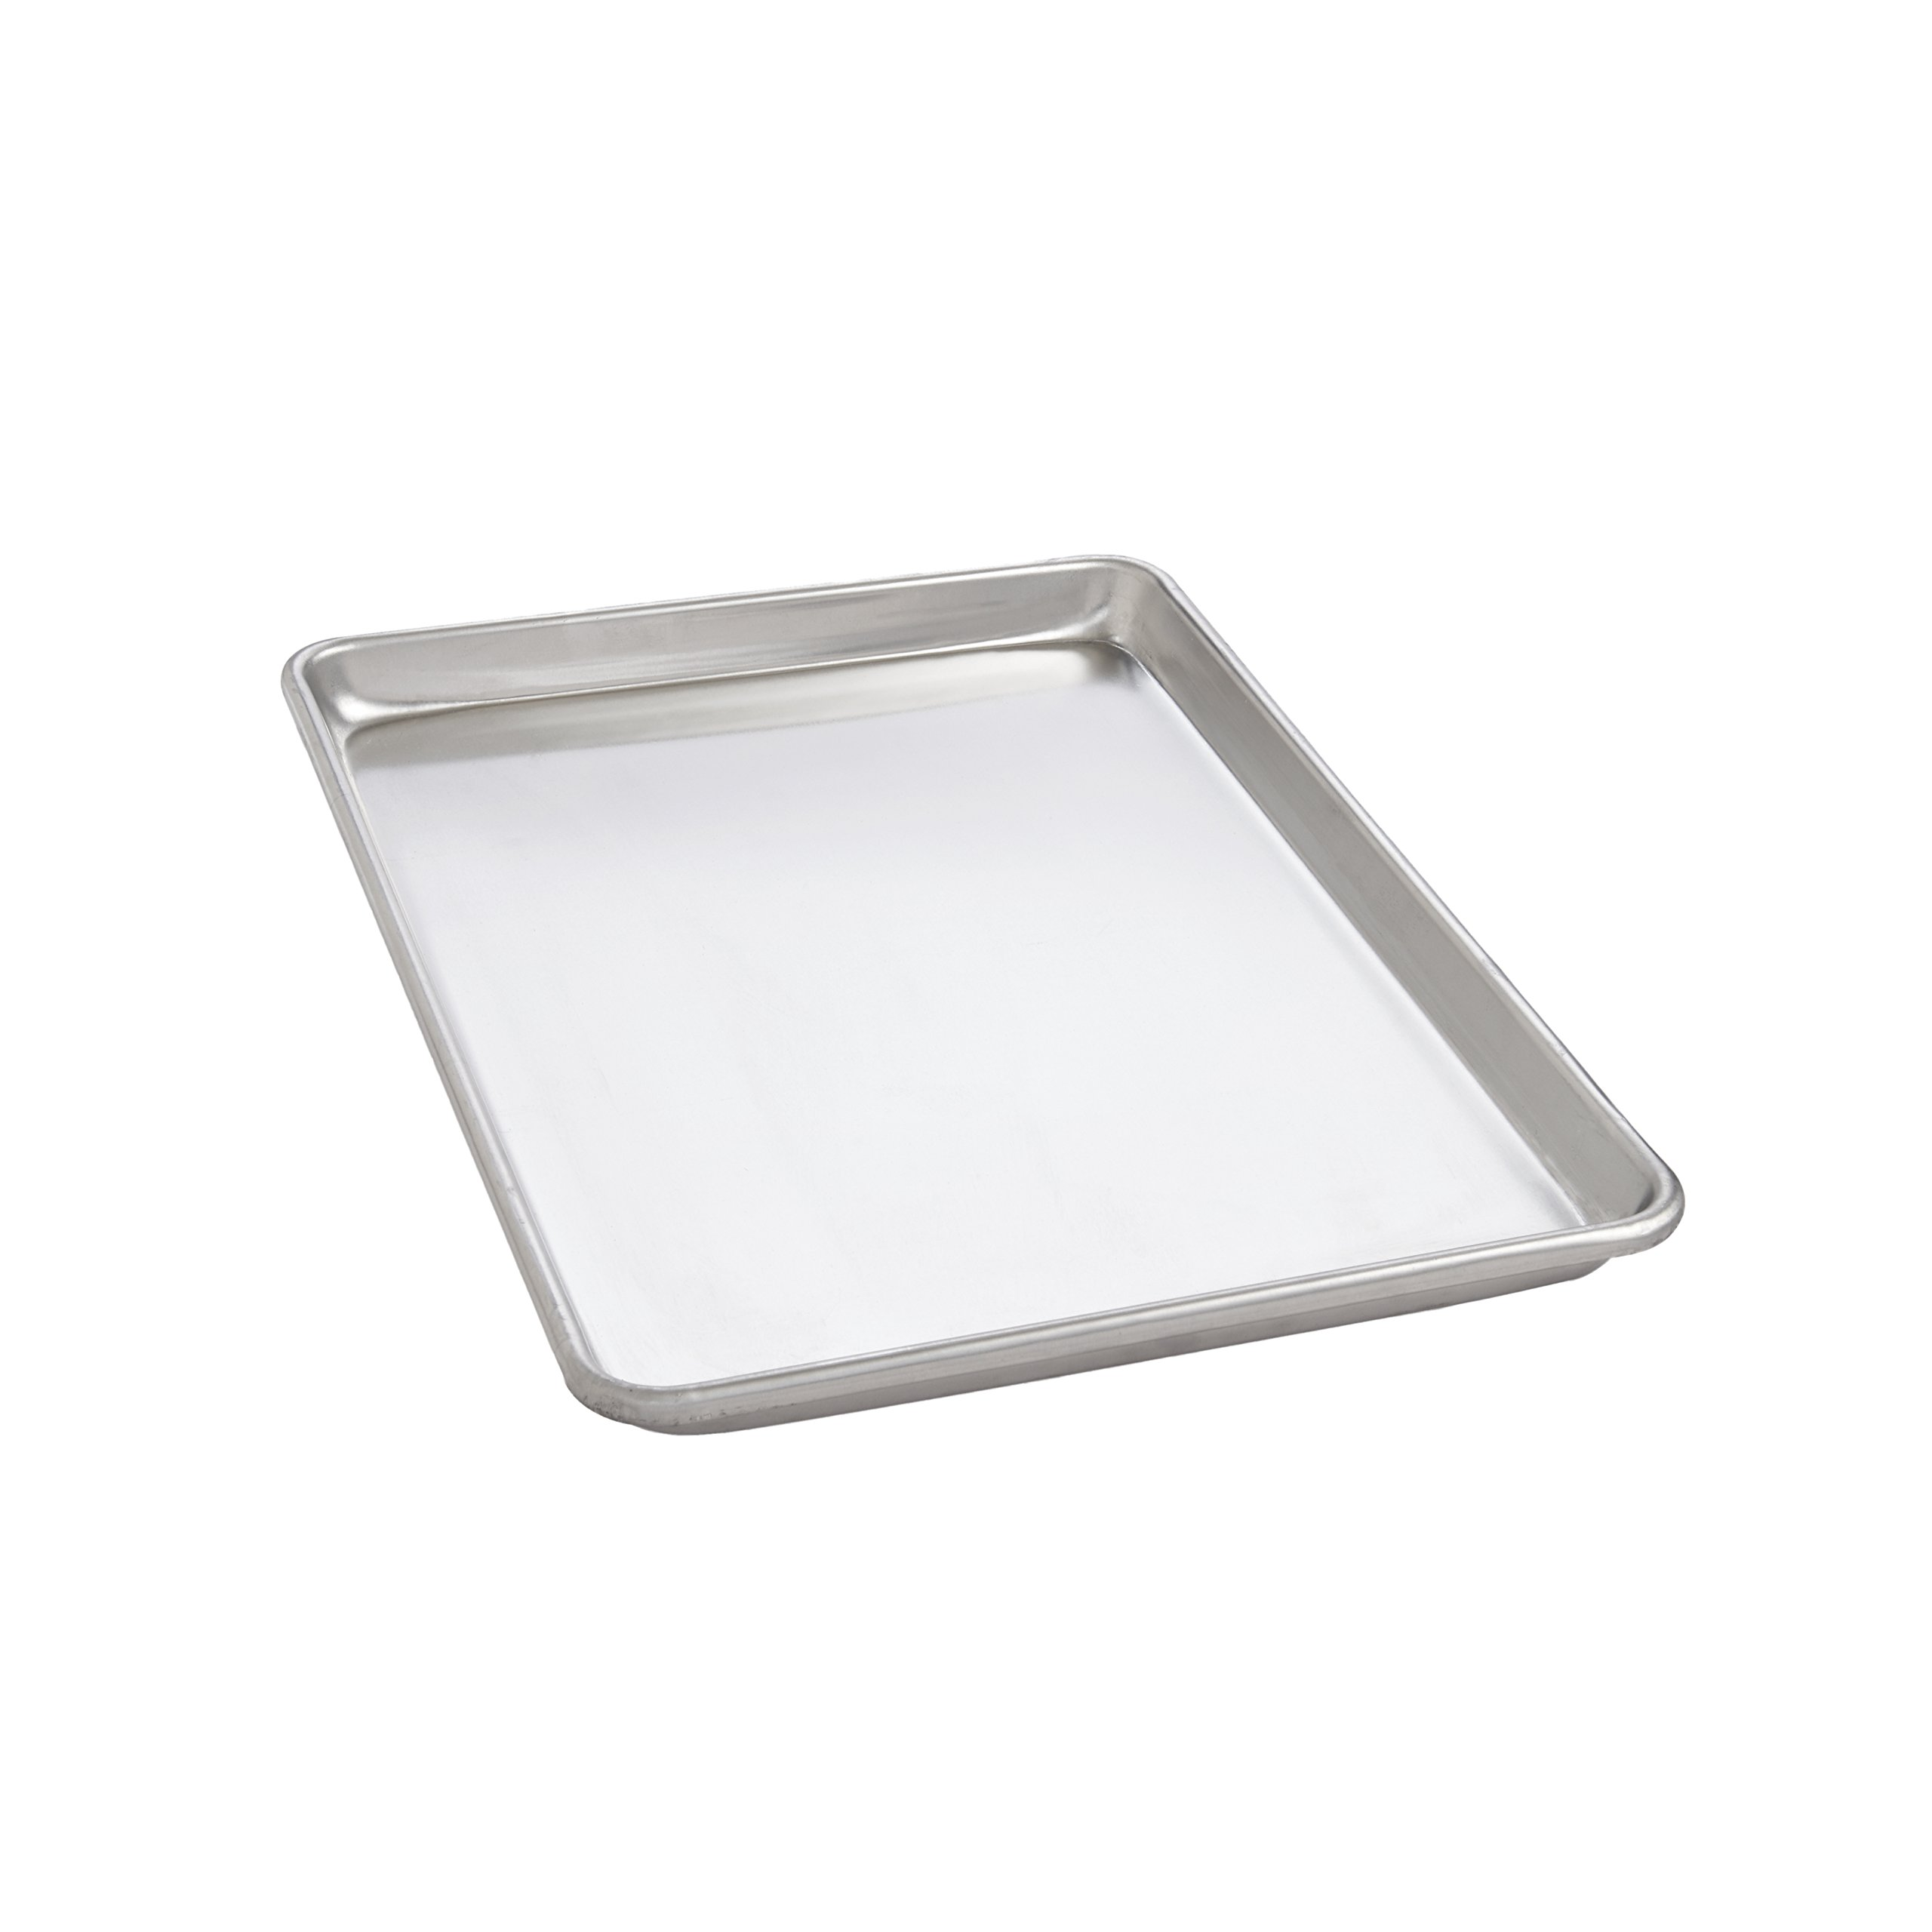 Mrs. Anderson's Baking Jelly Roll Pan, 10.25-Inches x 15.25-Inches, Heavyweight Commercial Grade 19-Gauge Aluminum